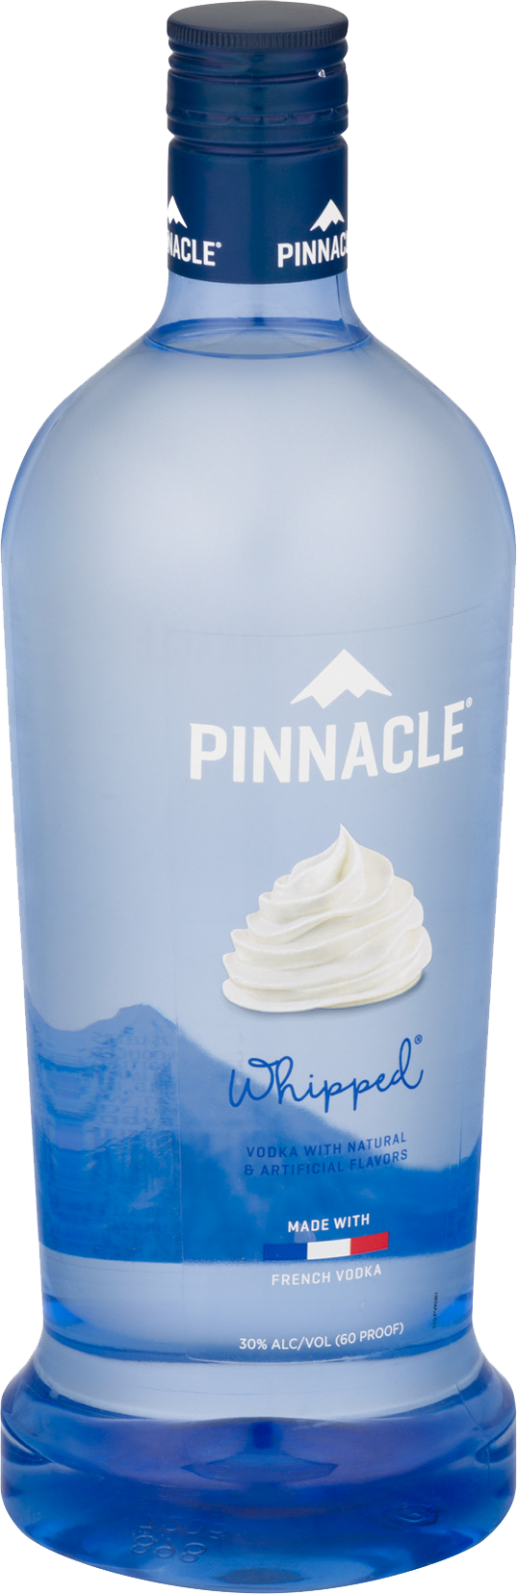 PINNACLE VOD WHIPPED 60 PET 1.75L